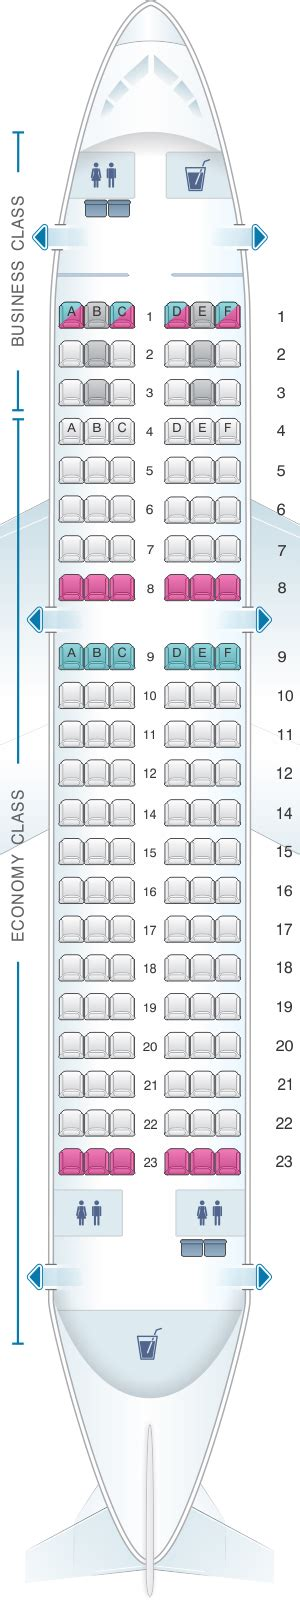 Seat Map Turkish Airlines Airbus A319 132 | SeatMaestro